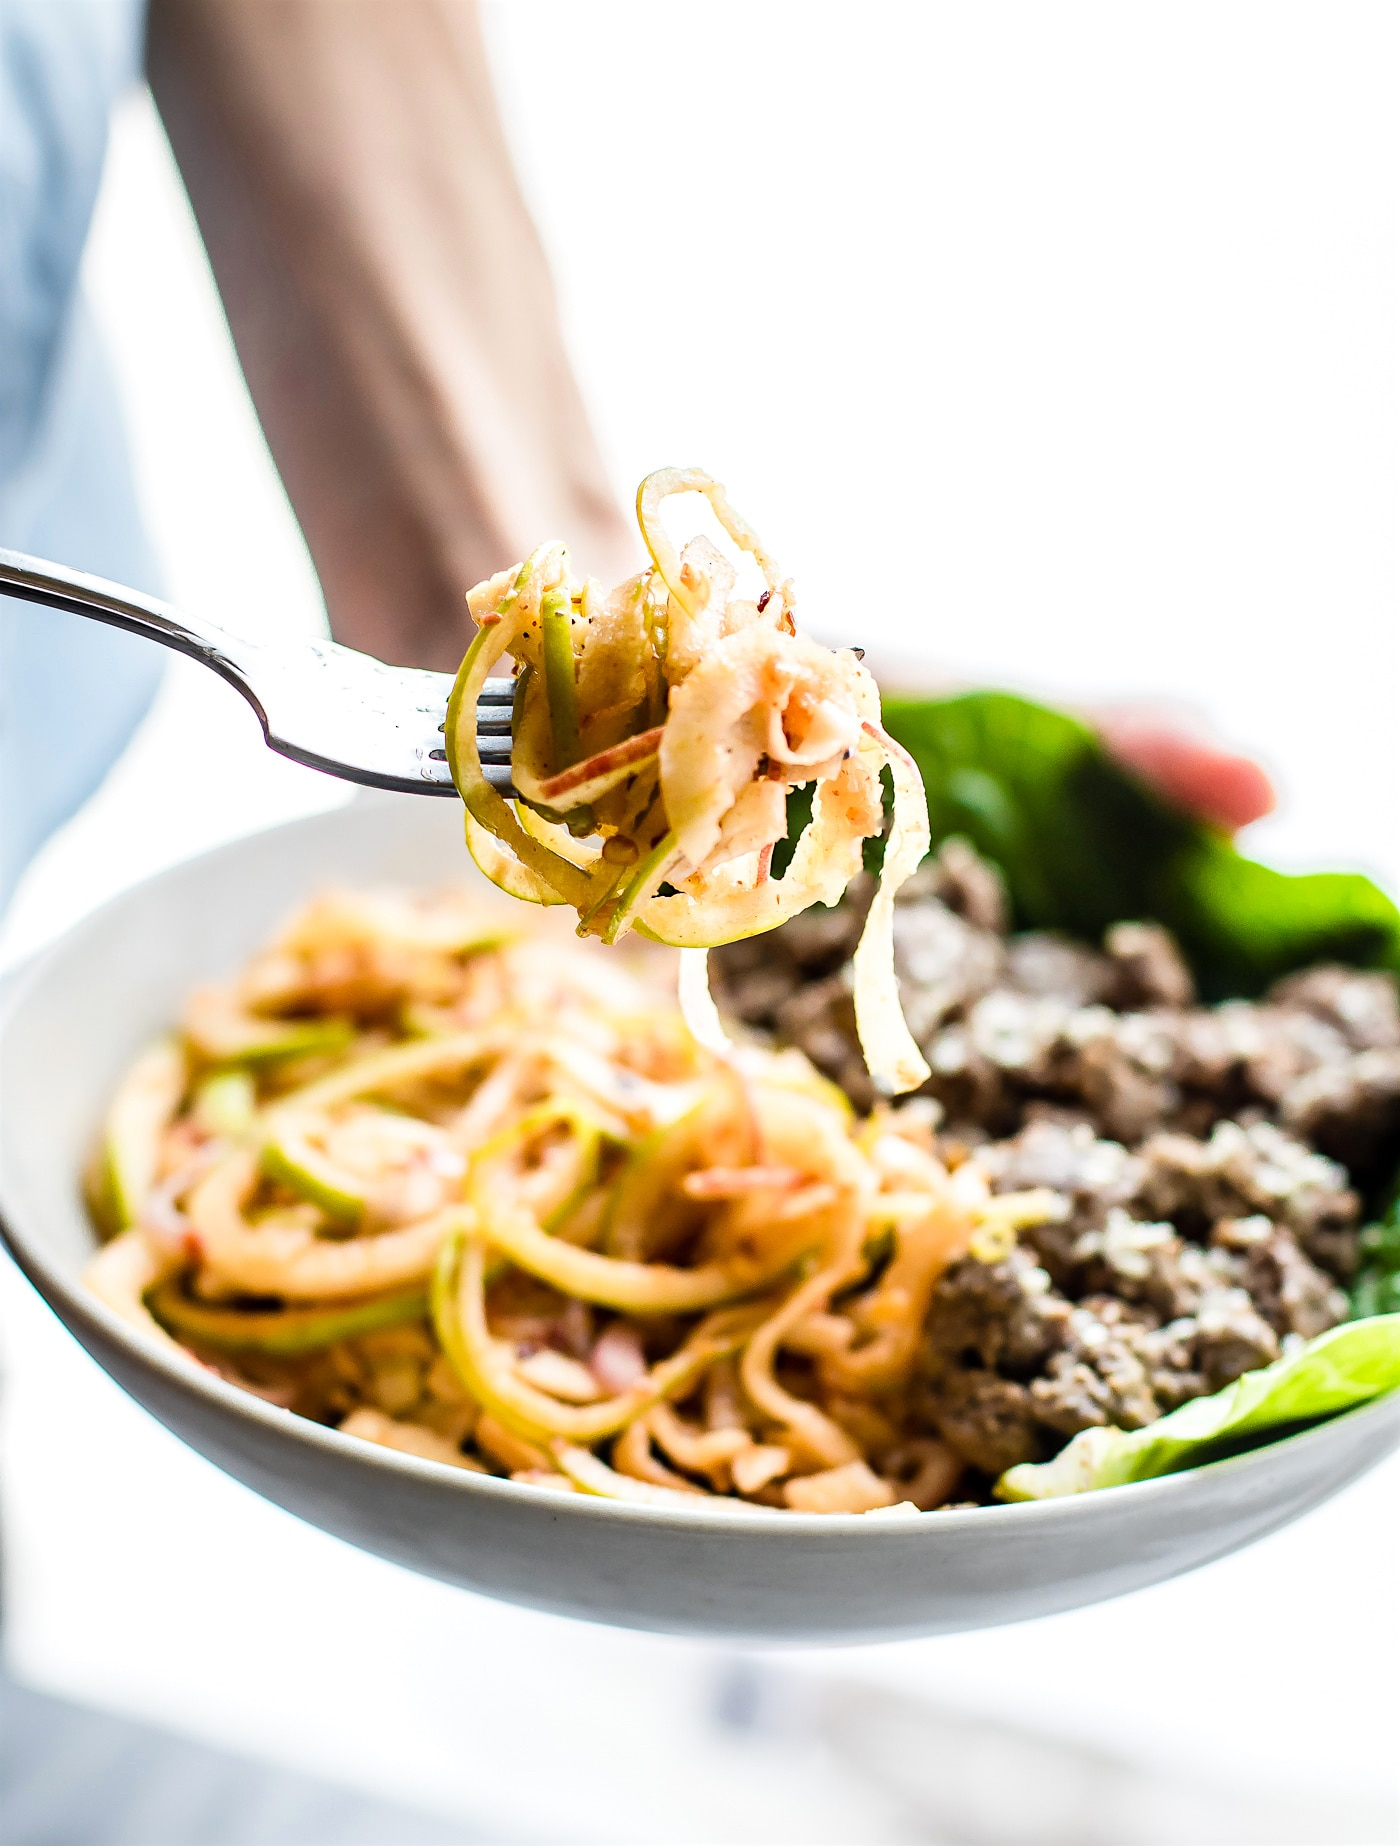 "Spiralized Apple ""kimchi"" salad with Garlic Beef! This Asian inspired spiralized apple salad makes a quick and healthy kimchi substitute. Red and Green Apple noodles combined in a spicy dressing with garlic beef. An easy Paleo power bowl meal ready in 20 minutes!"